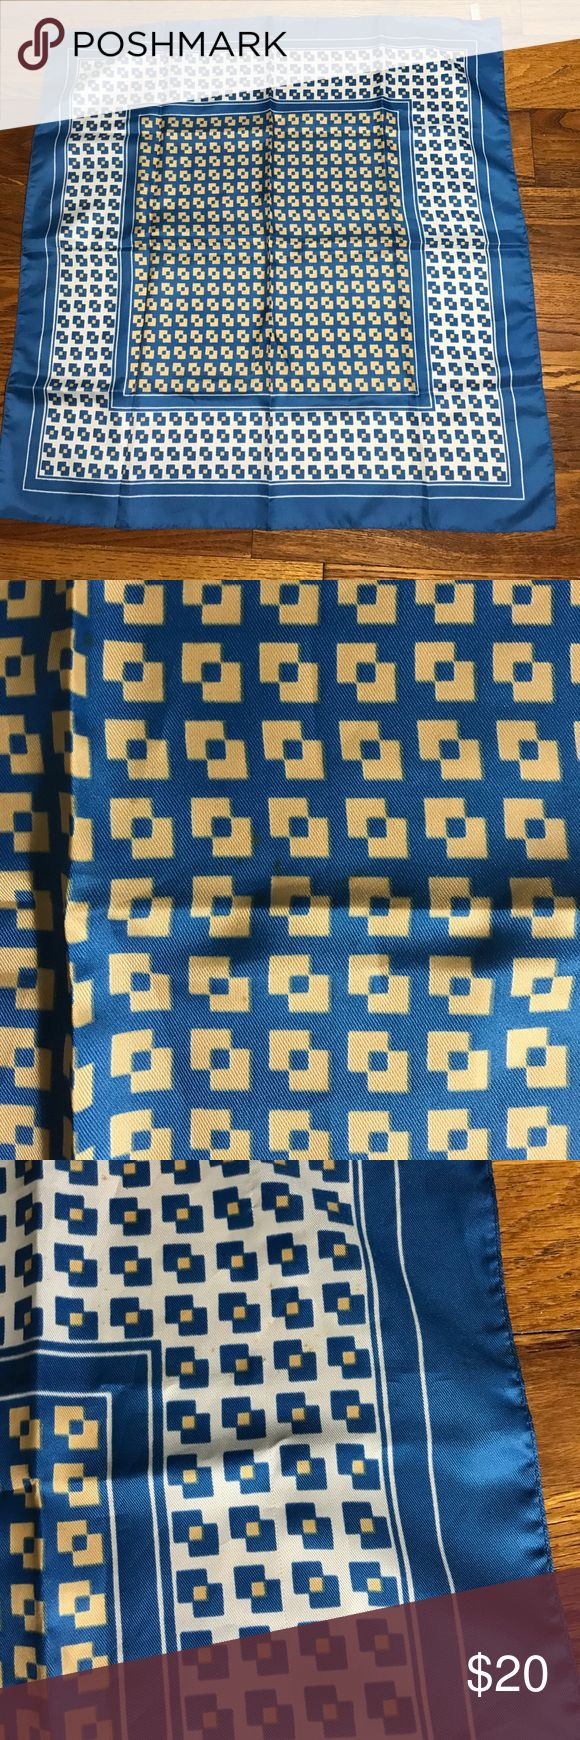 "Silk square scarf blue and white Silk square scarf 26.5"" hand rolled edges. A few small stains. Accessories Scarves & Wraps"